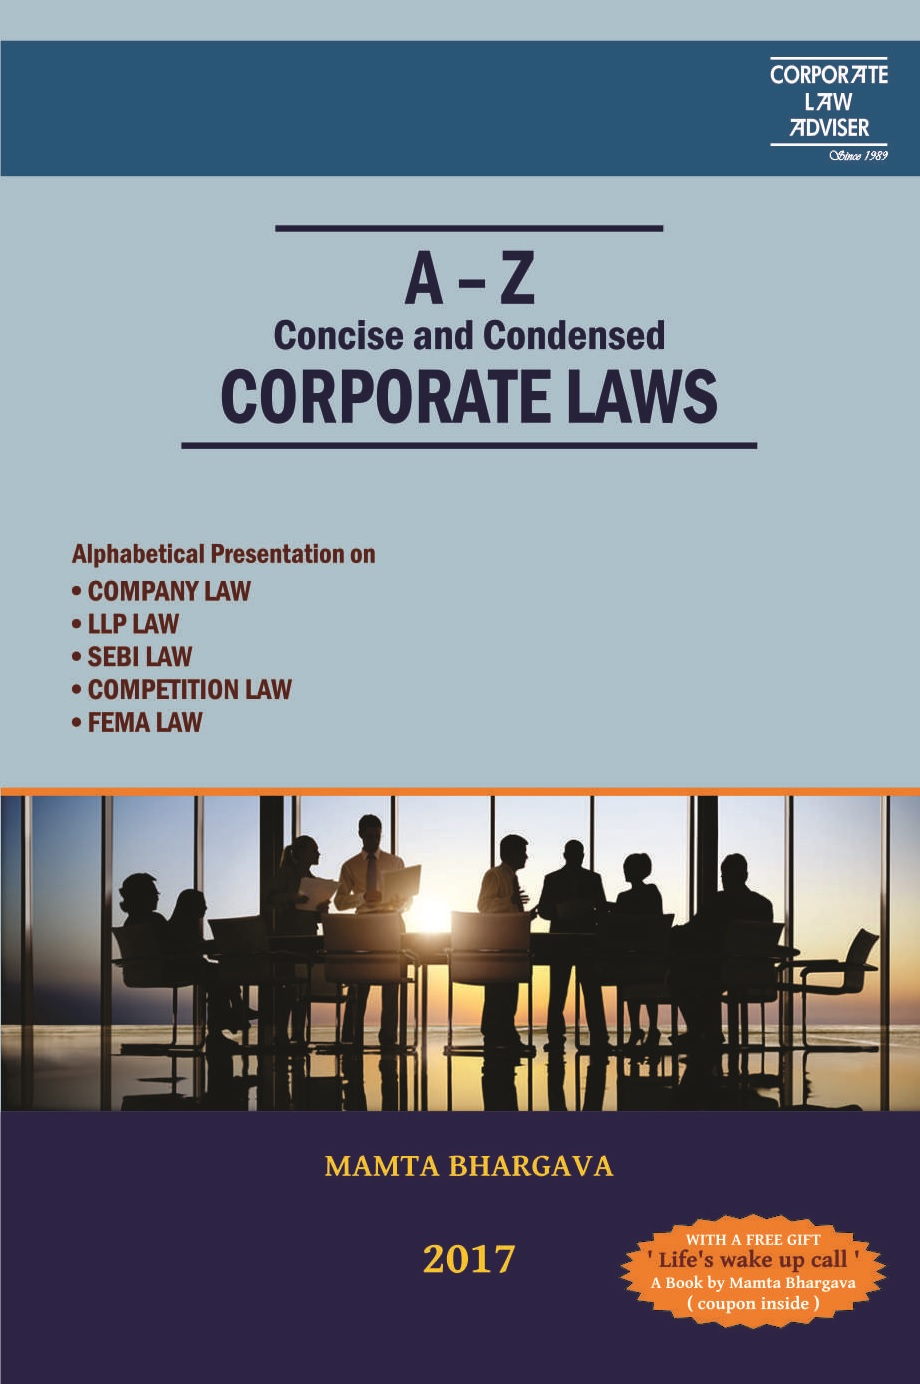 A – Z Concise and Condensed CORPORATE LAWS